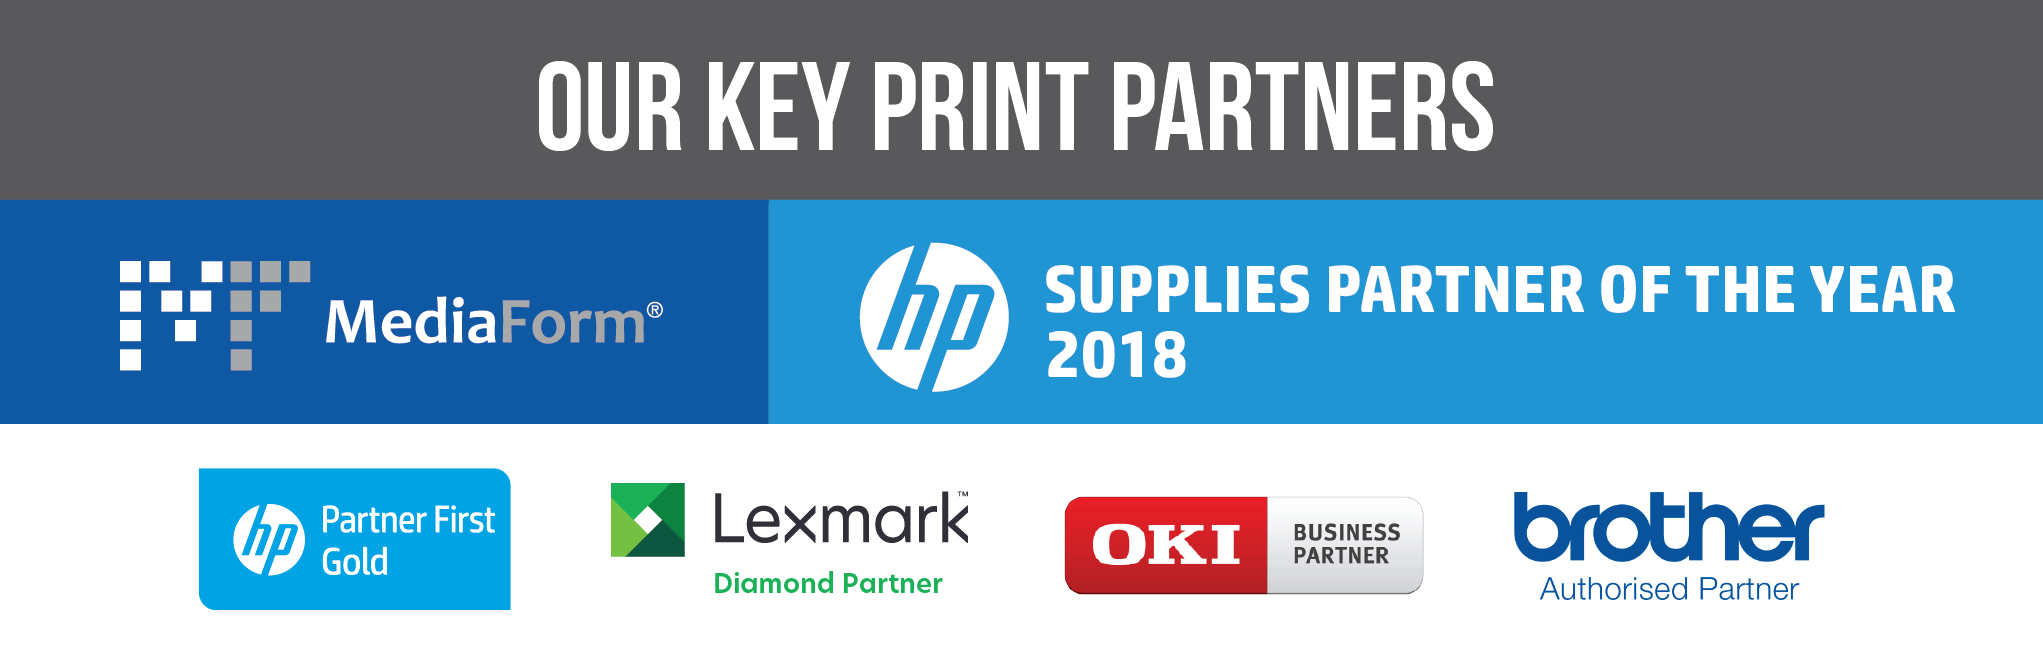 Our Key Print Partners